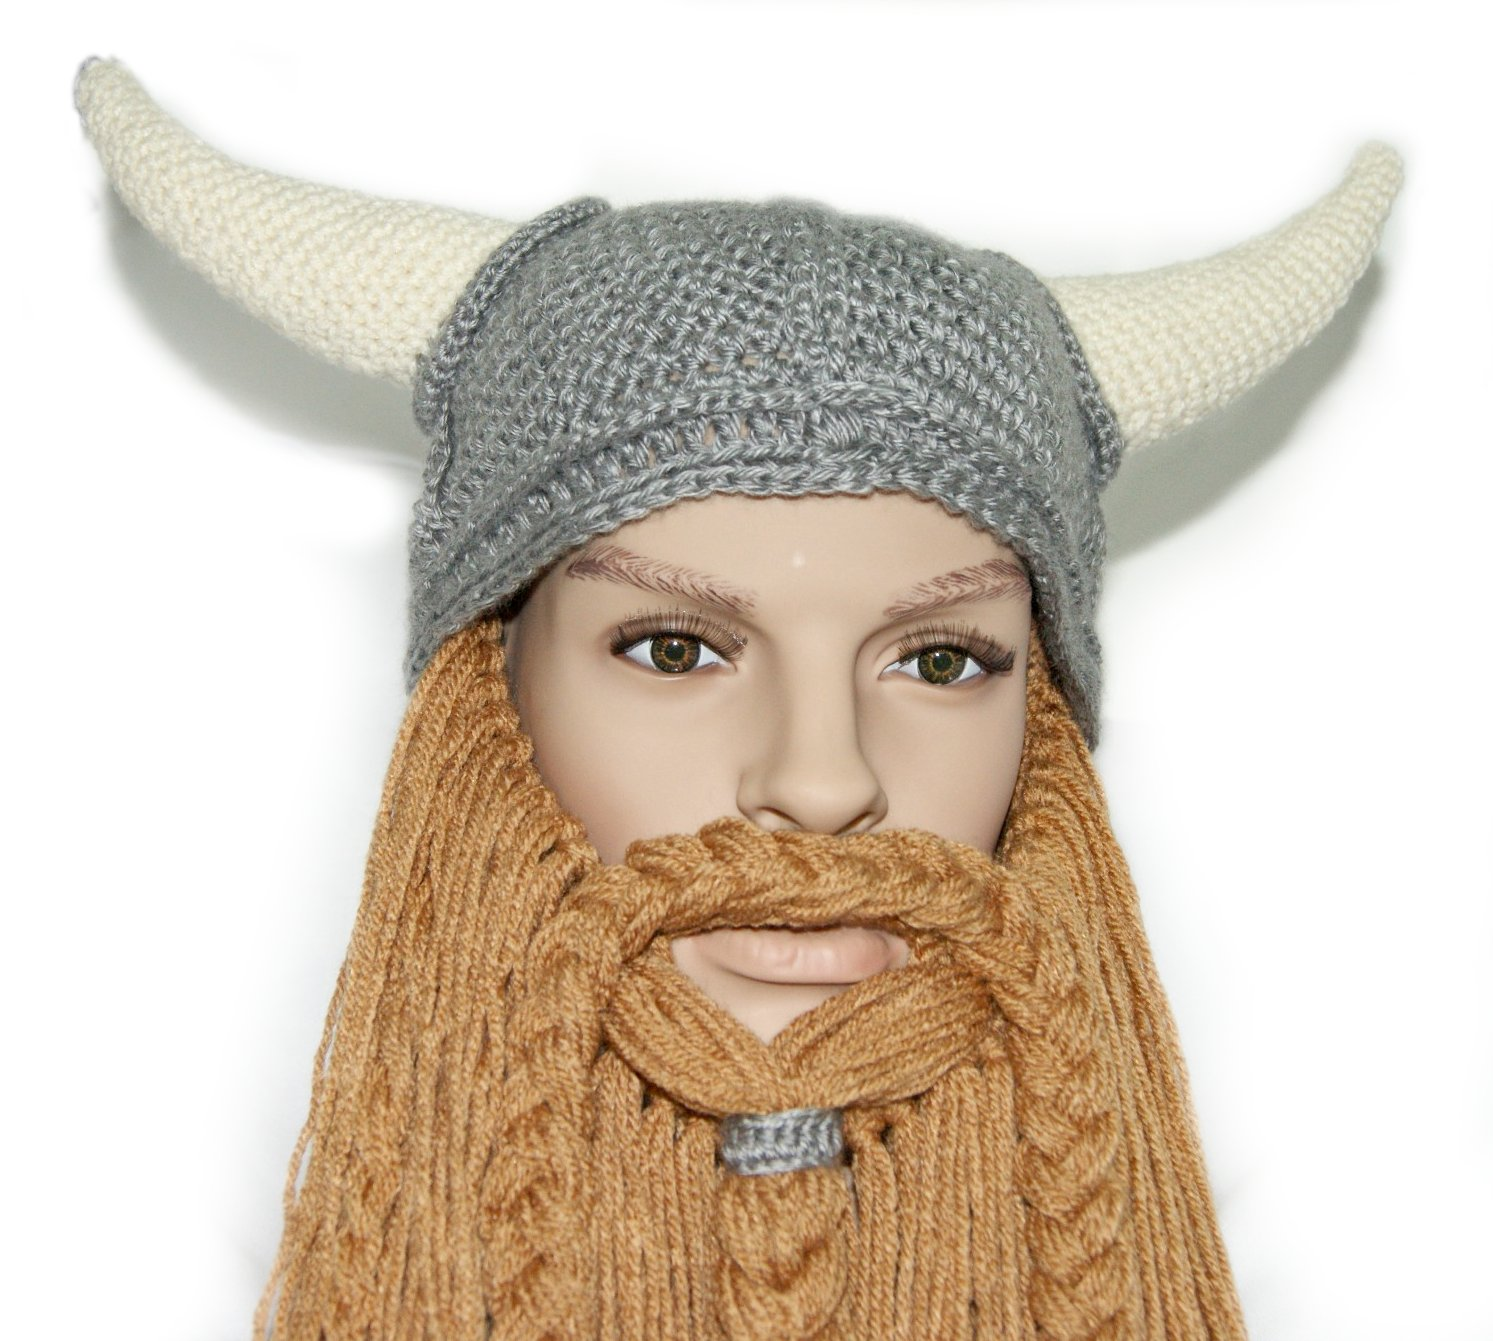 Crochet Beard Beanie Pattern Free - Viewing Gallery